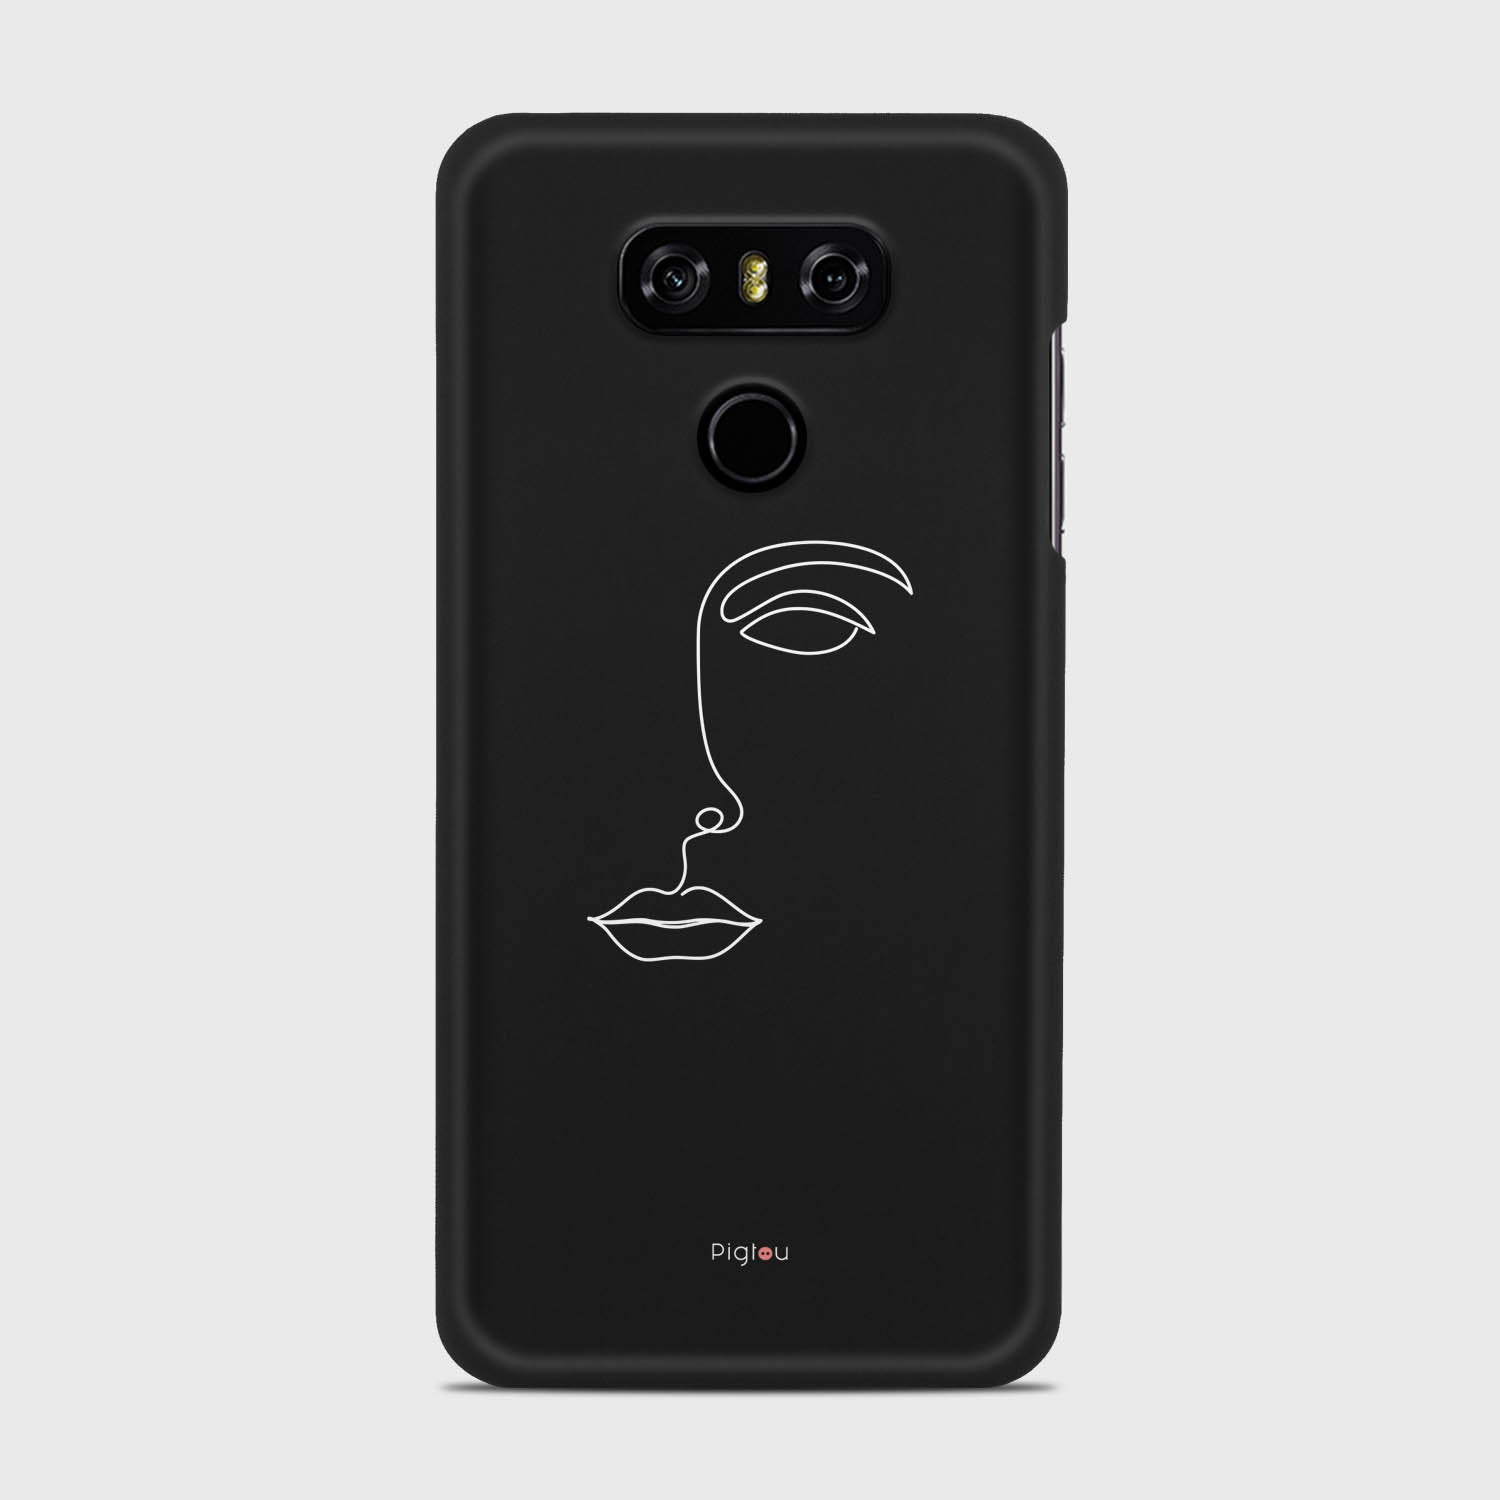 SILHOUETTE FACE LG G6 cases | Pigtou